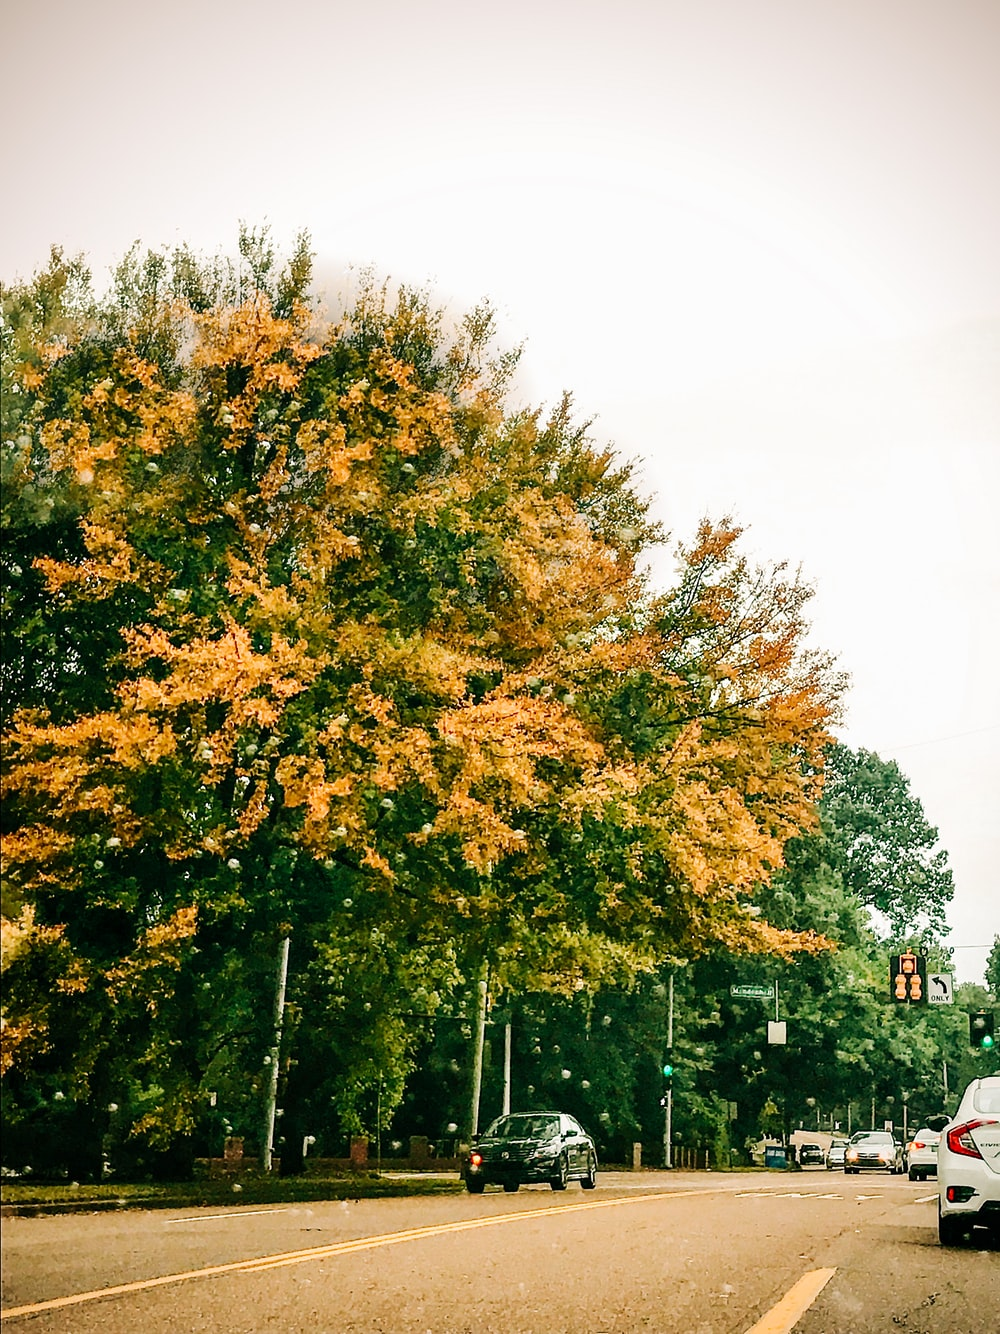 green and yellow trees near cars on road during daytime